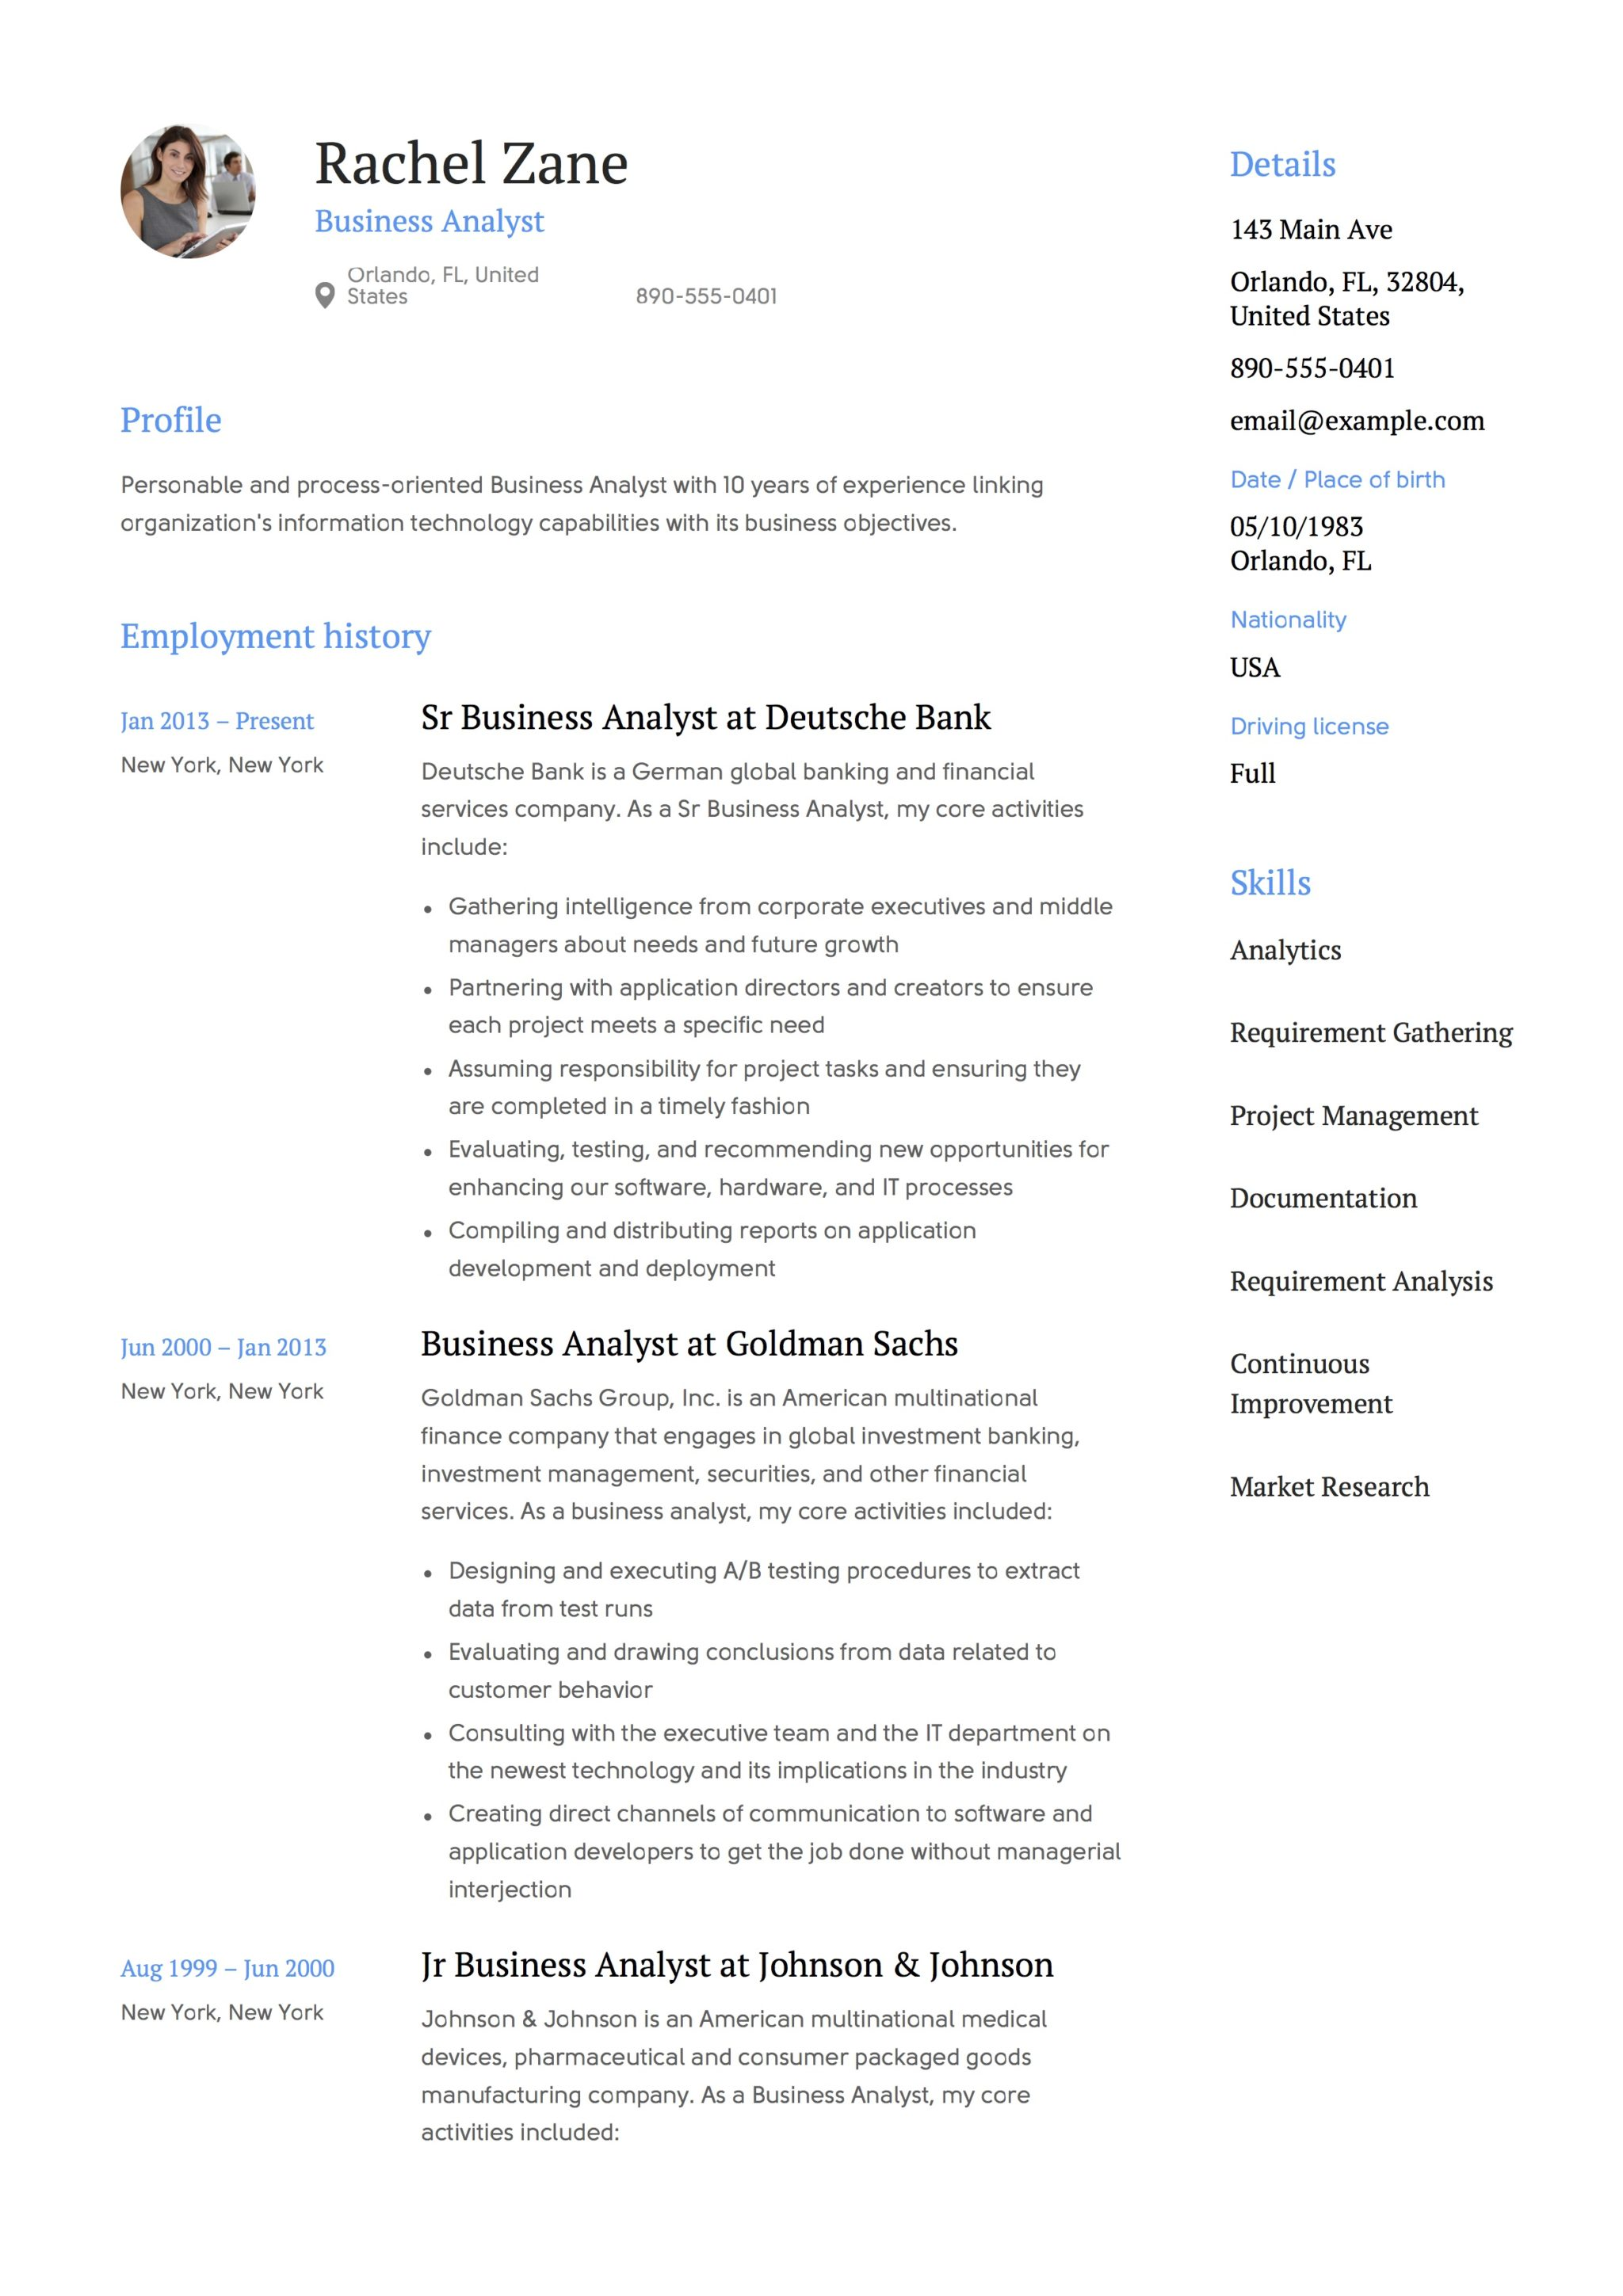 Resume Sample Business Business Analyst Resume Templates Staruptalent